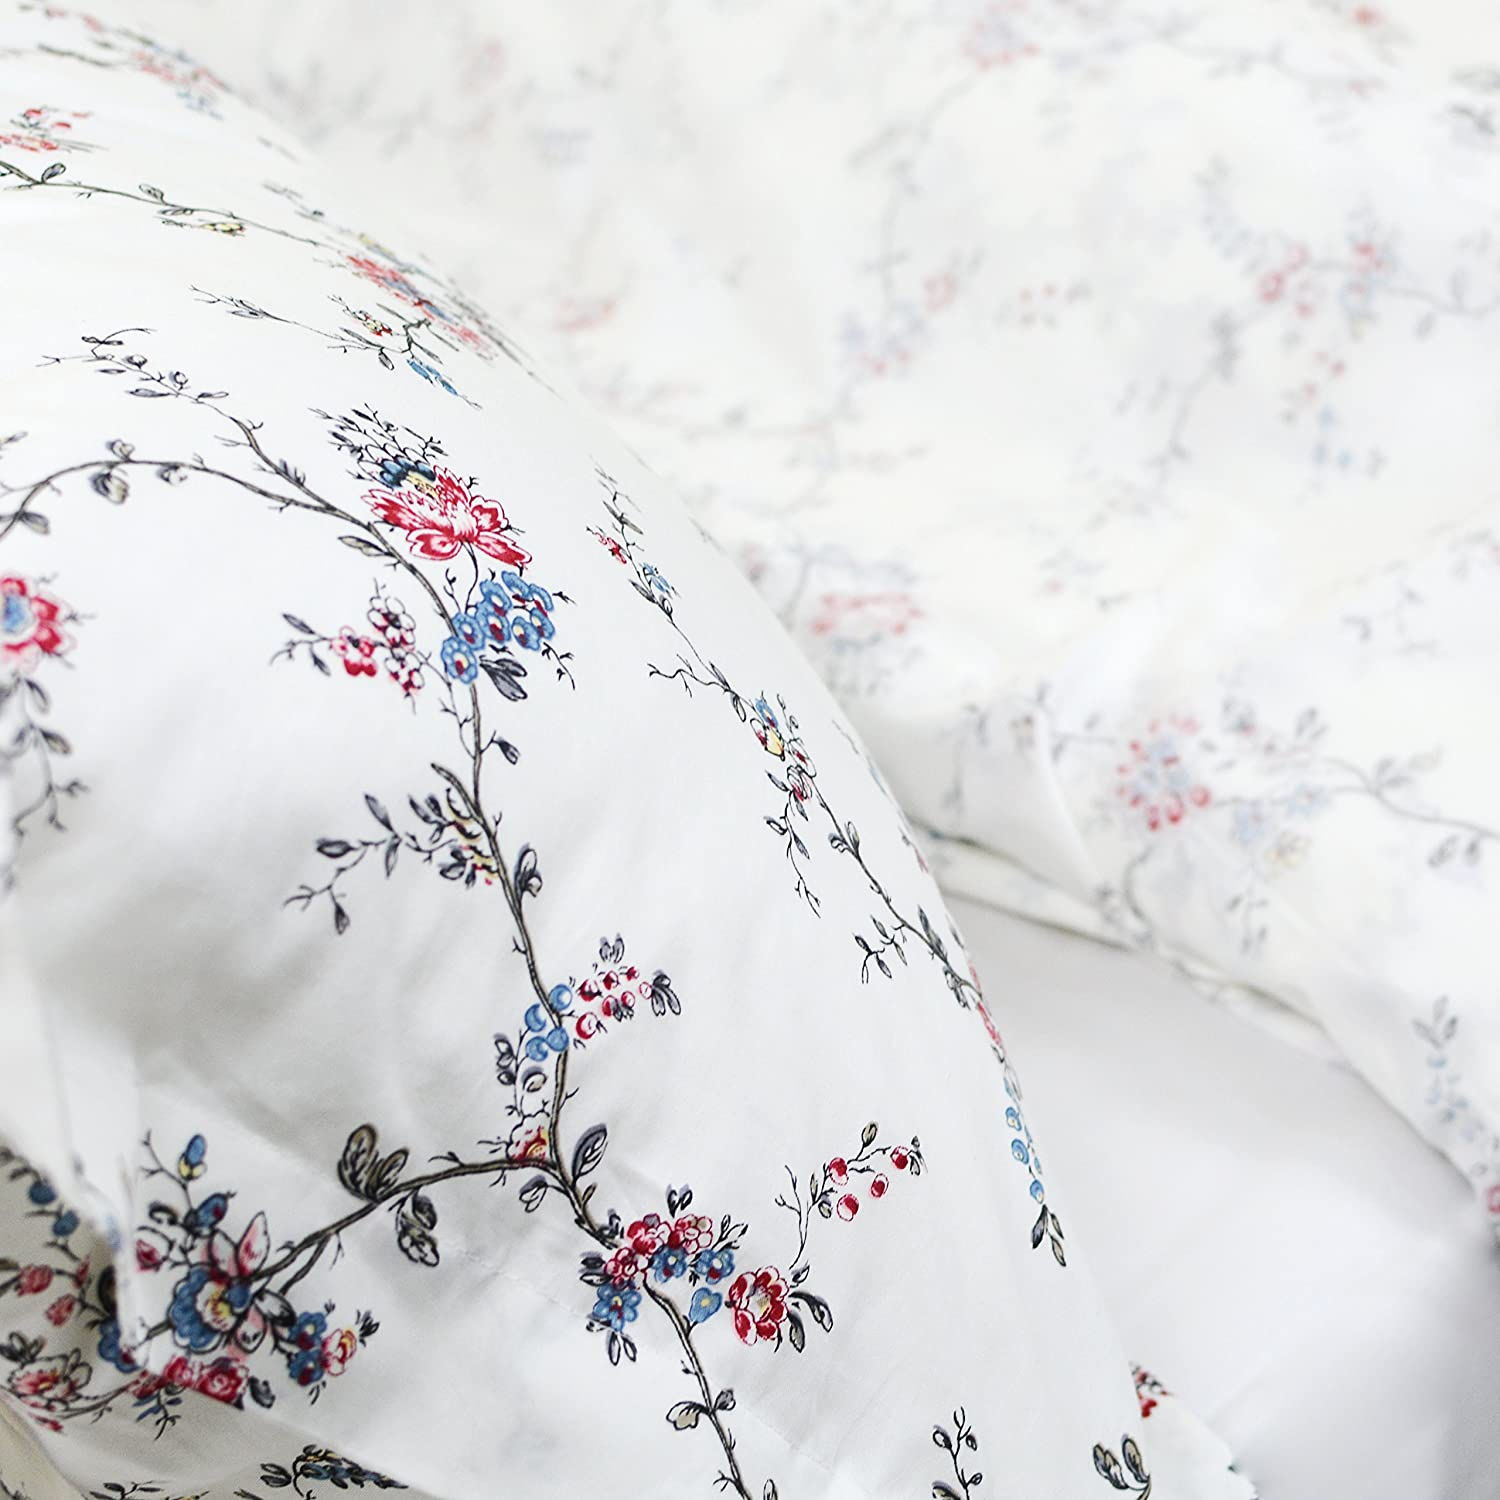 FADFAY Fashionable Rose and Hydrangea Floral 100/% Cotton Soft Duvet Cover Set Reversible with Hidden Zipper Closure,Twin XL Size 3-Pieces